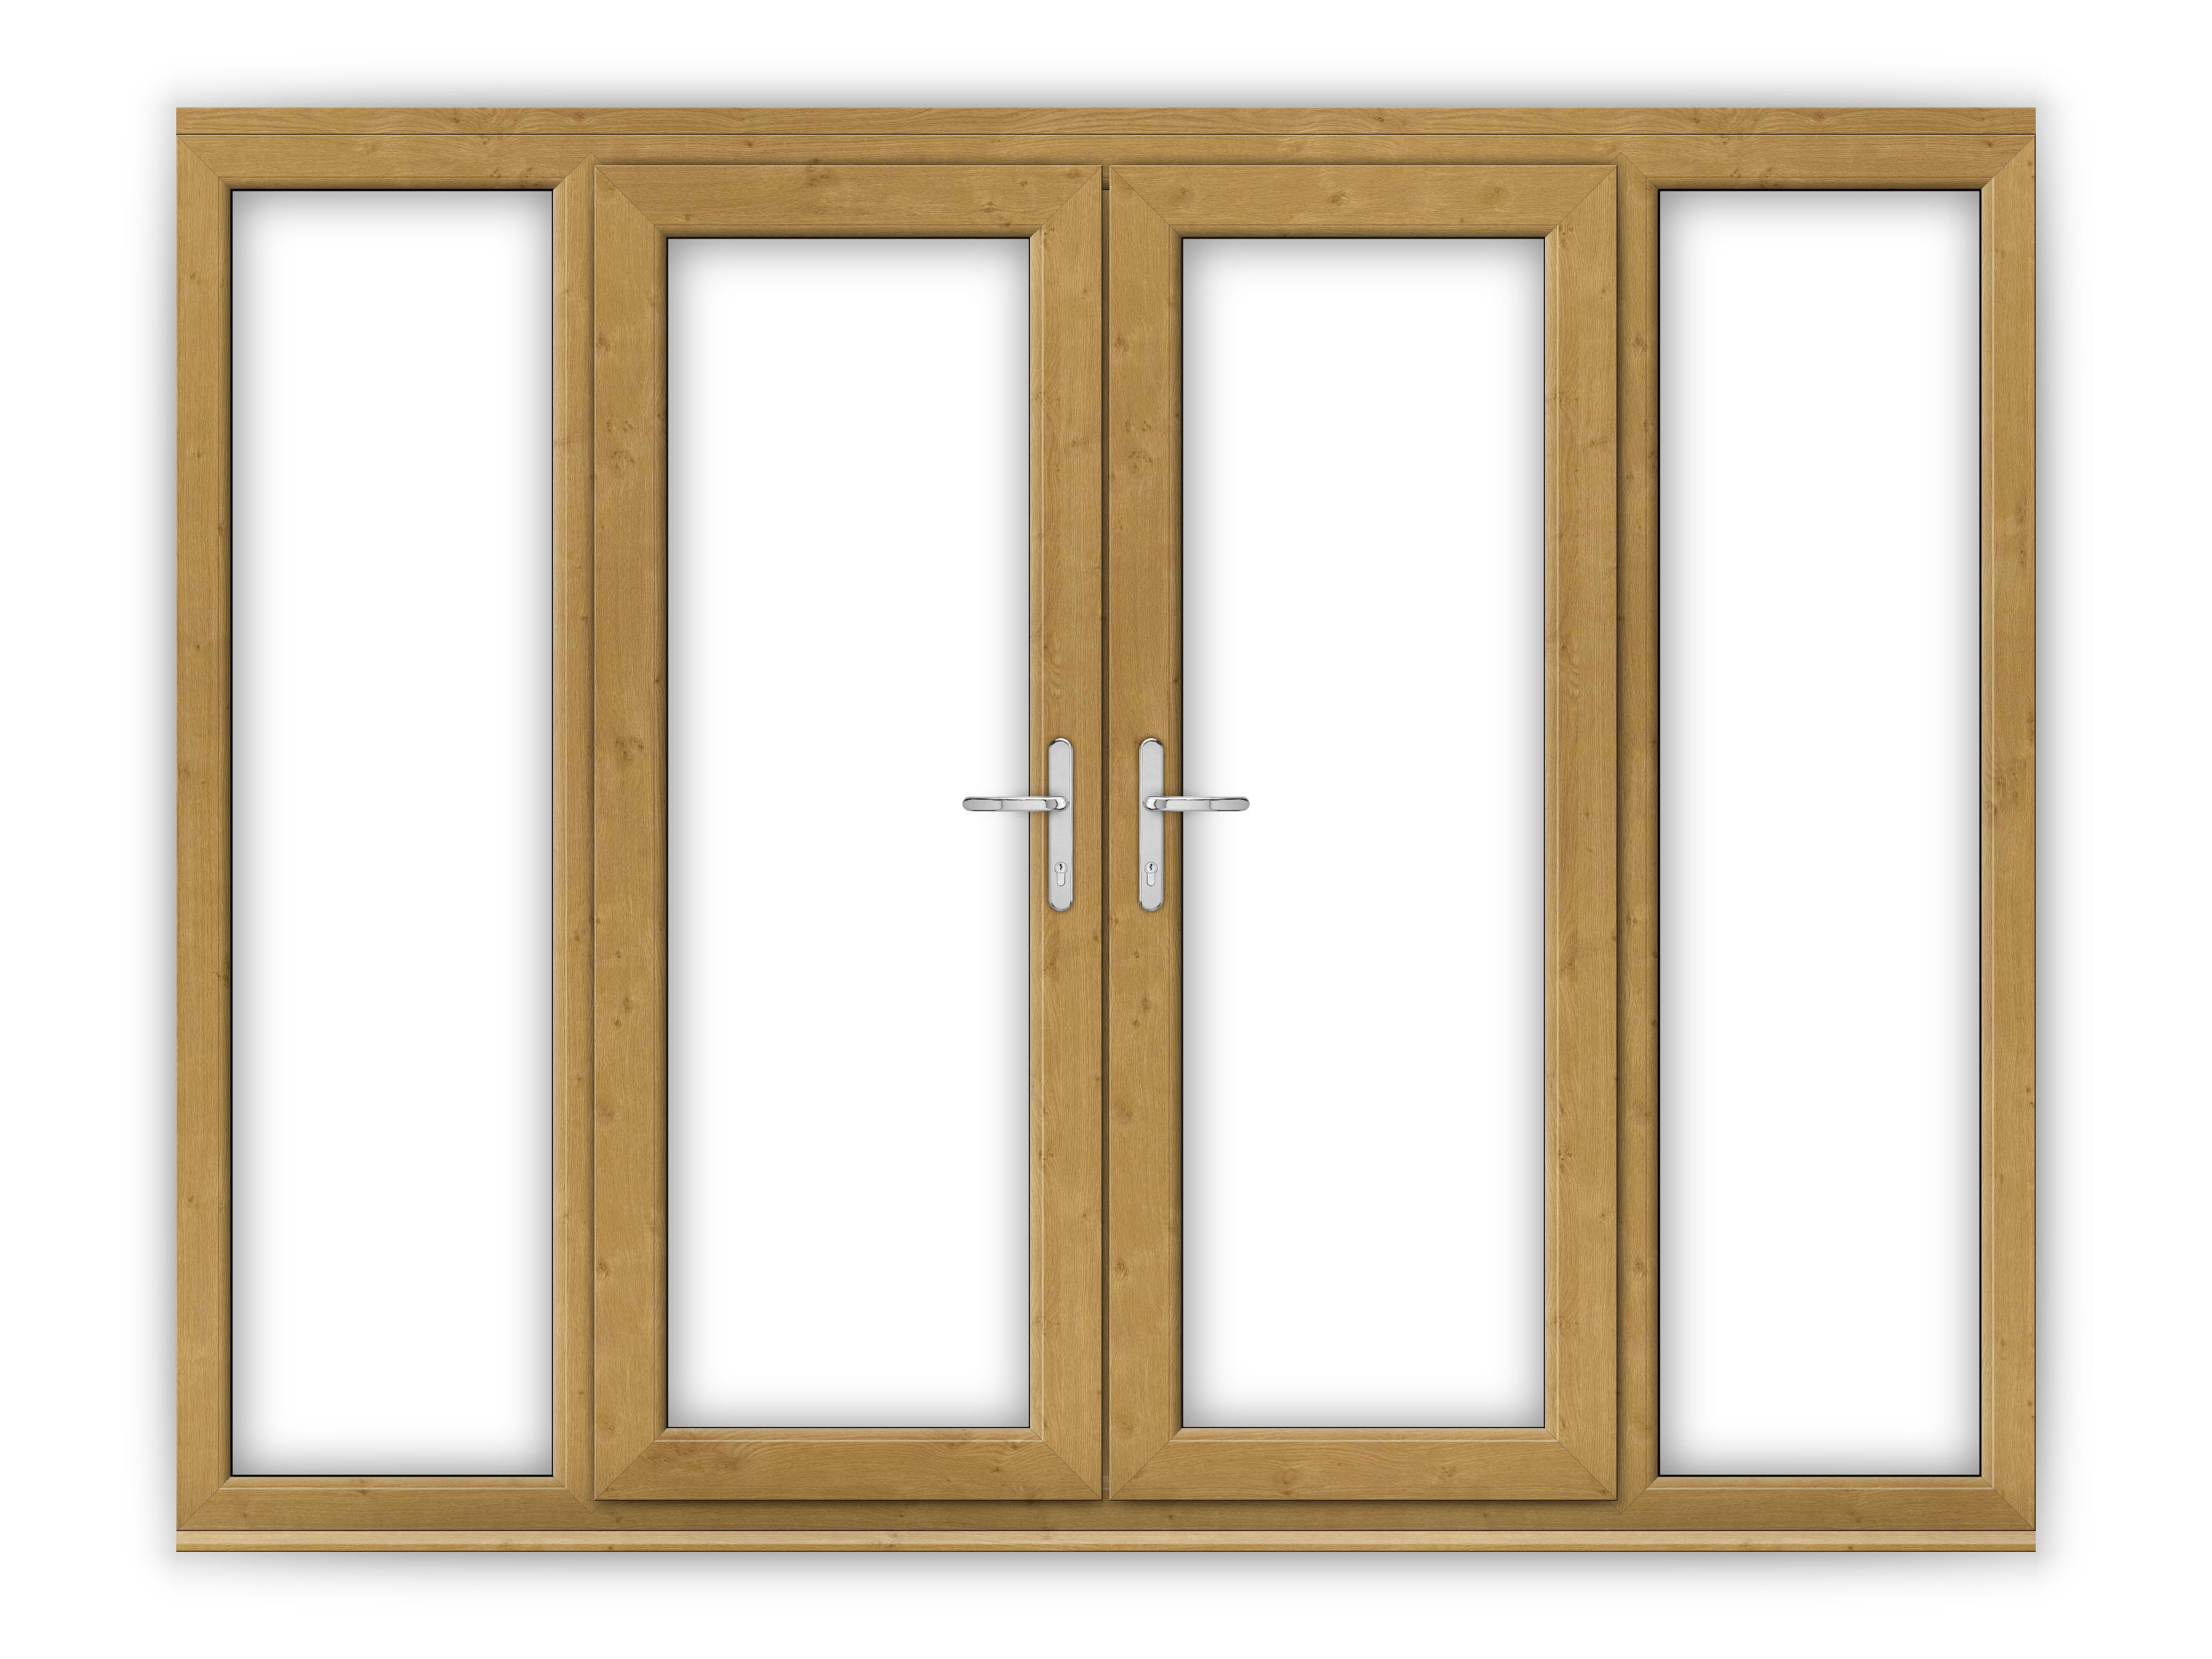 5ft irish oak upvc french doors with wide side panels